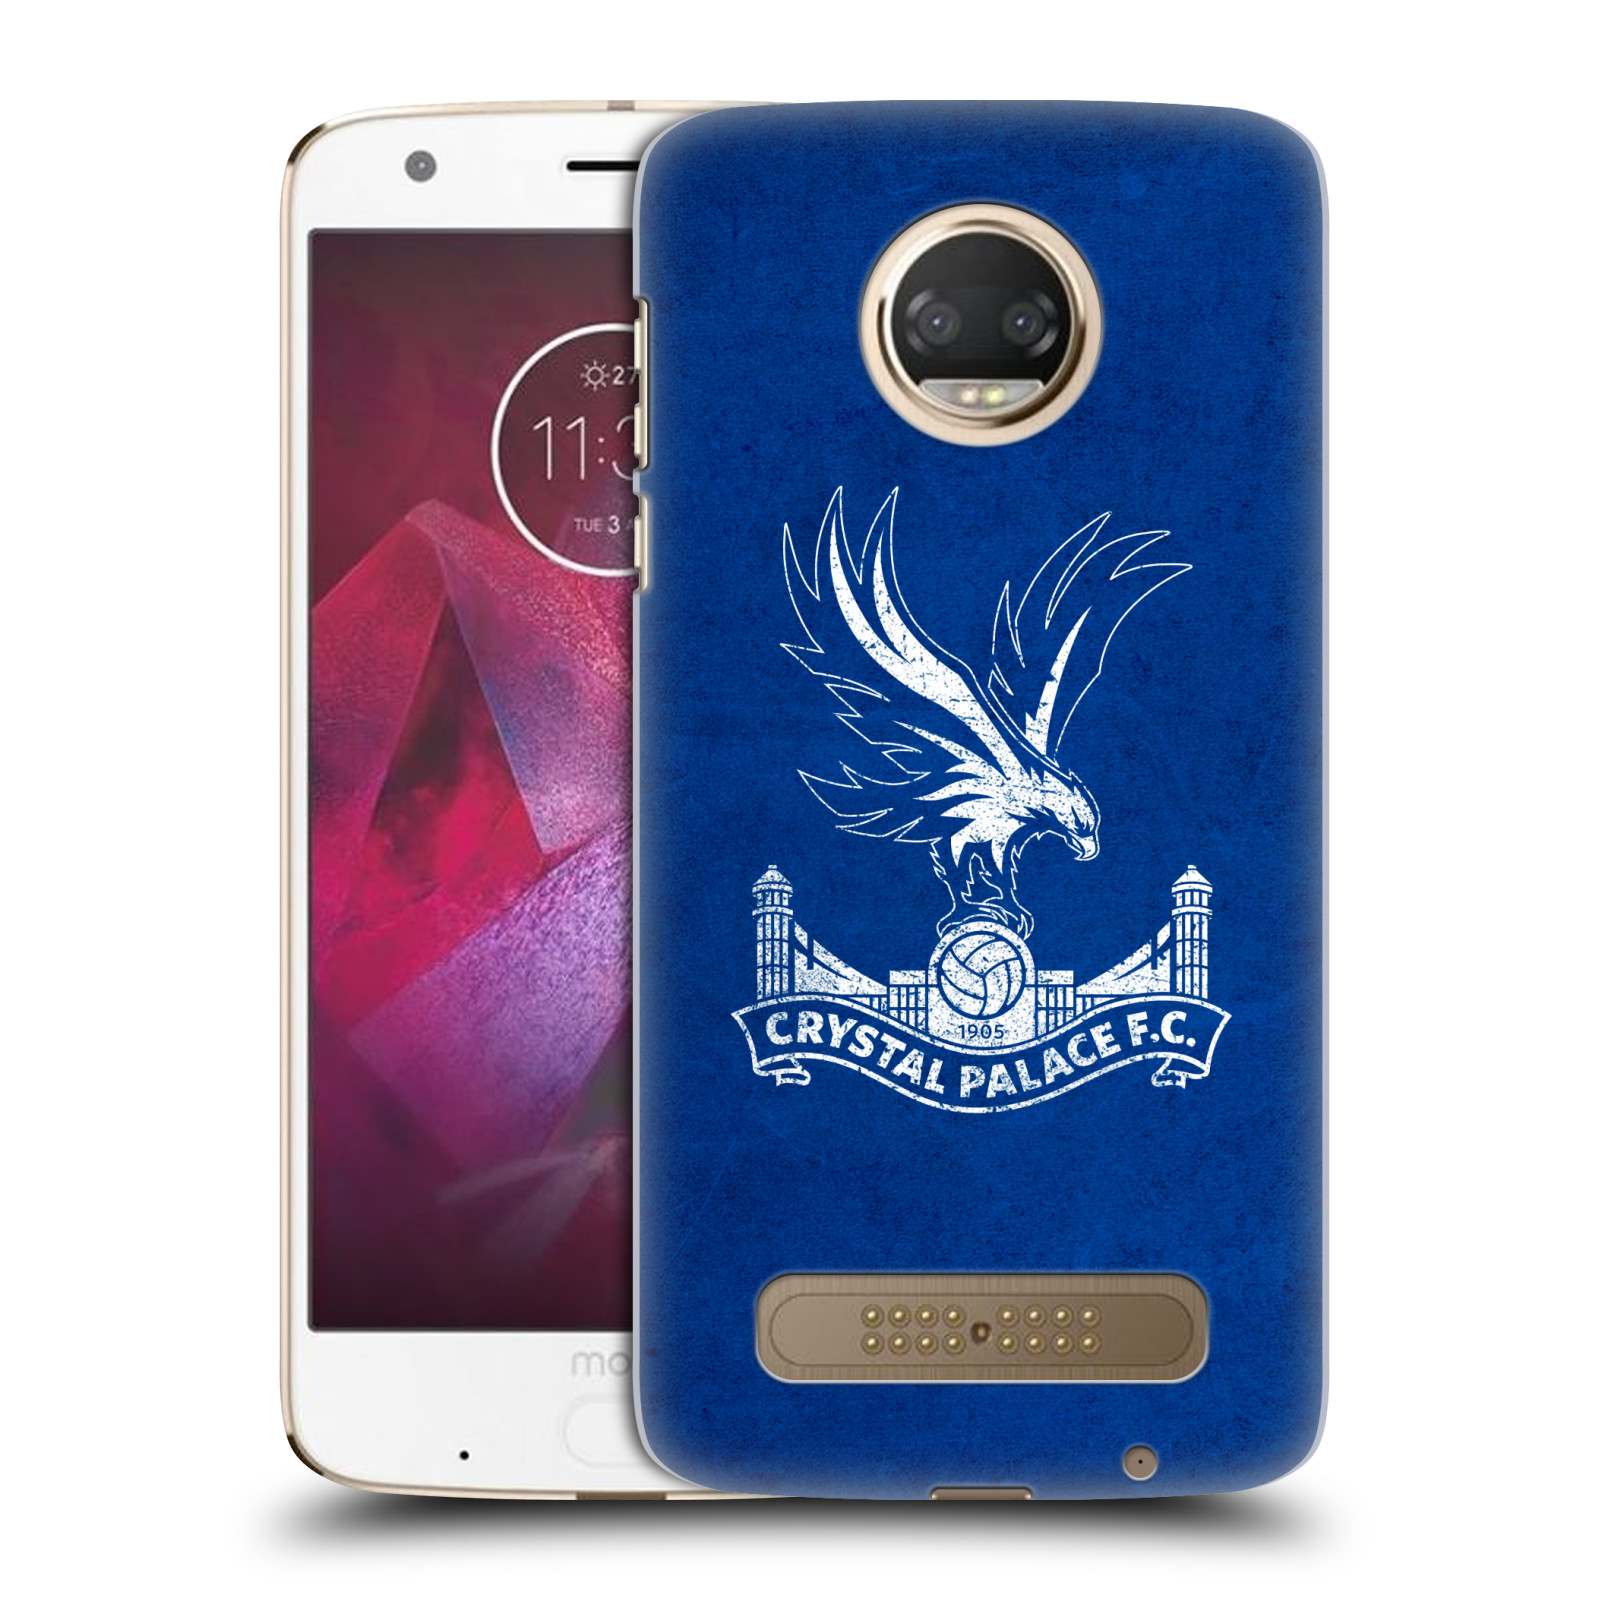 OFFICIAL-CRYSTAL-PALACE-FC-2017-18-CREST-AND-PATTERNS-CASE-FOR-MOTOROLA-PHONES-1